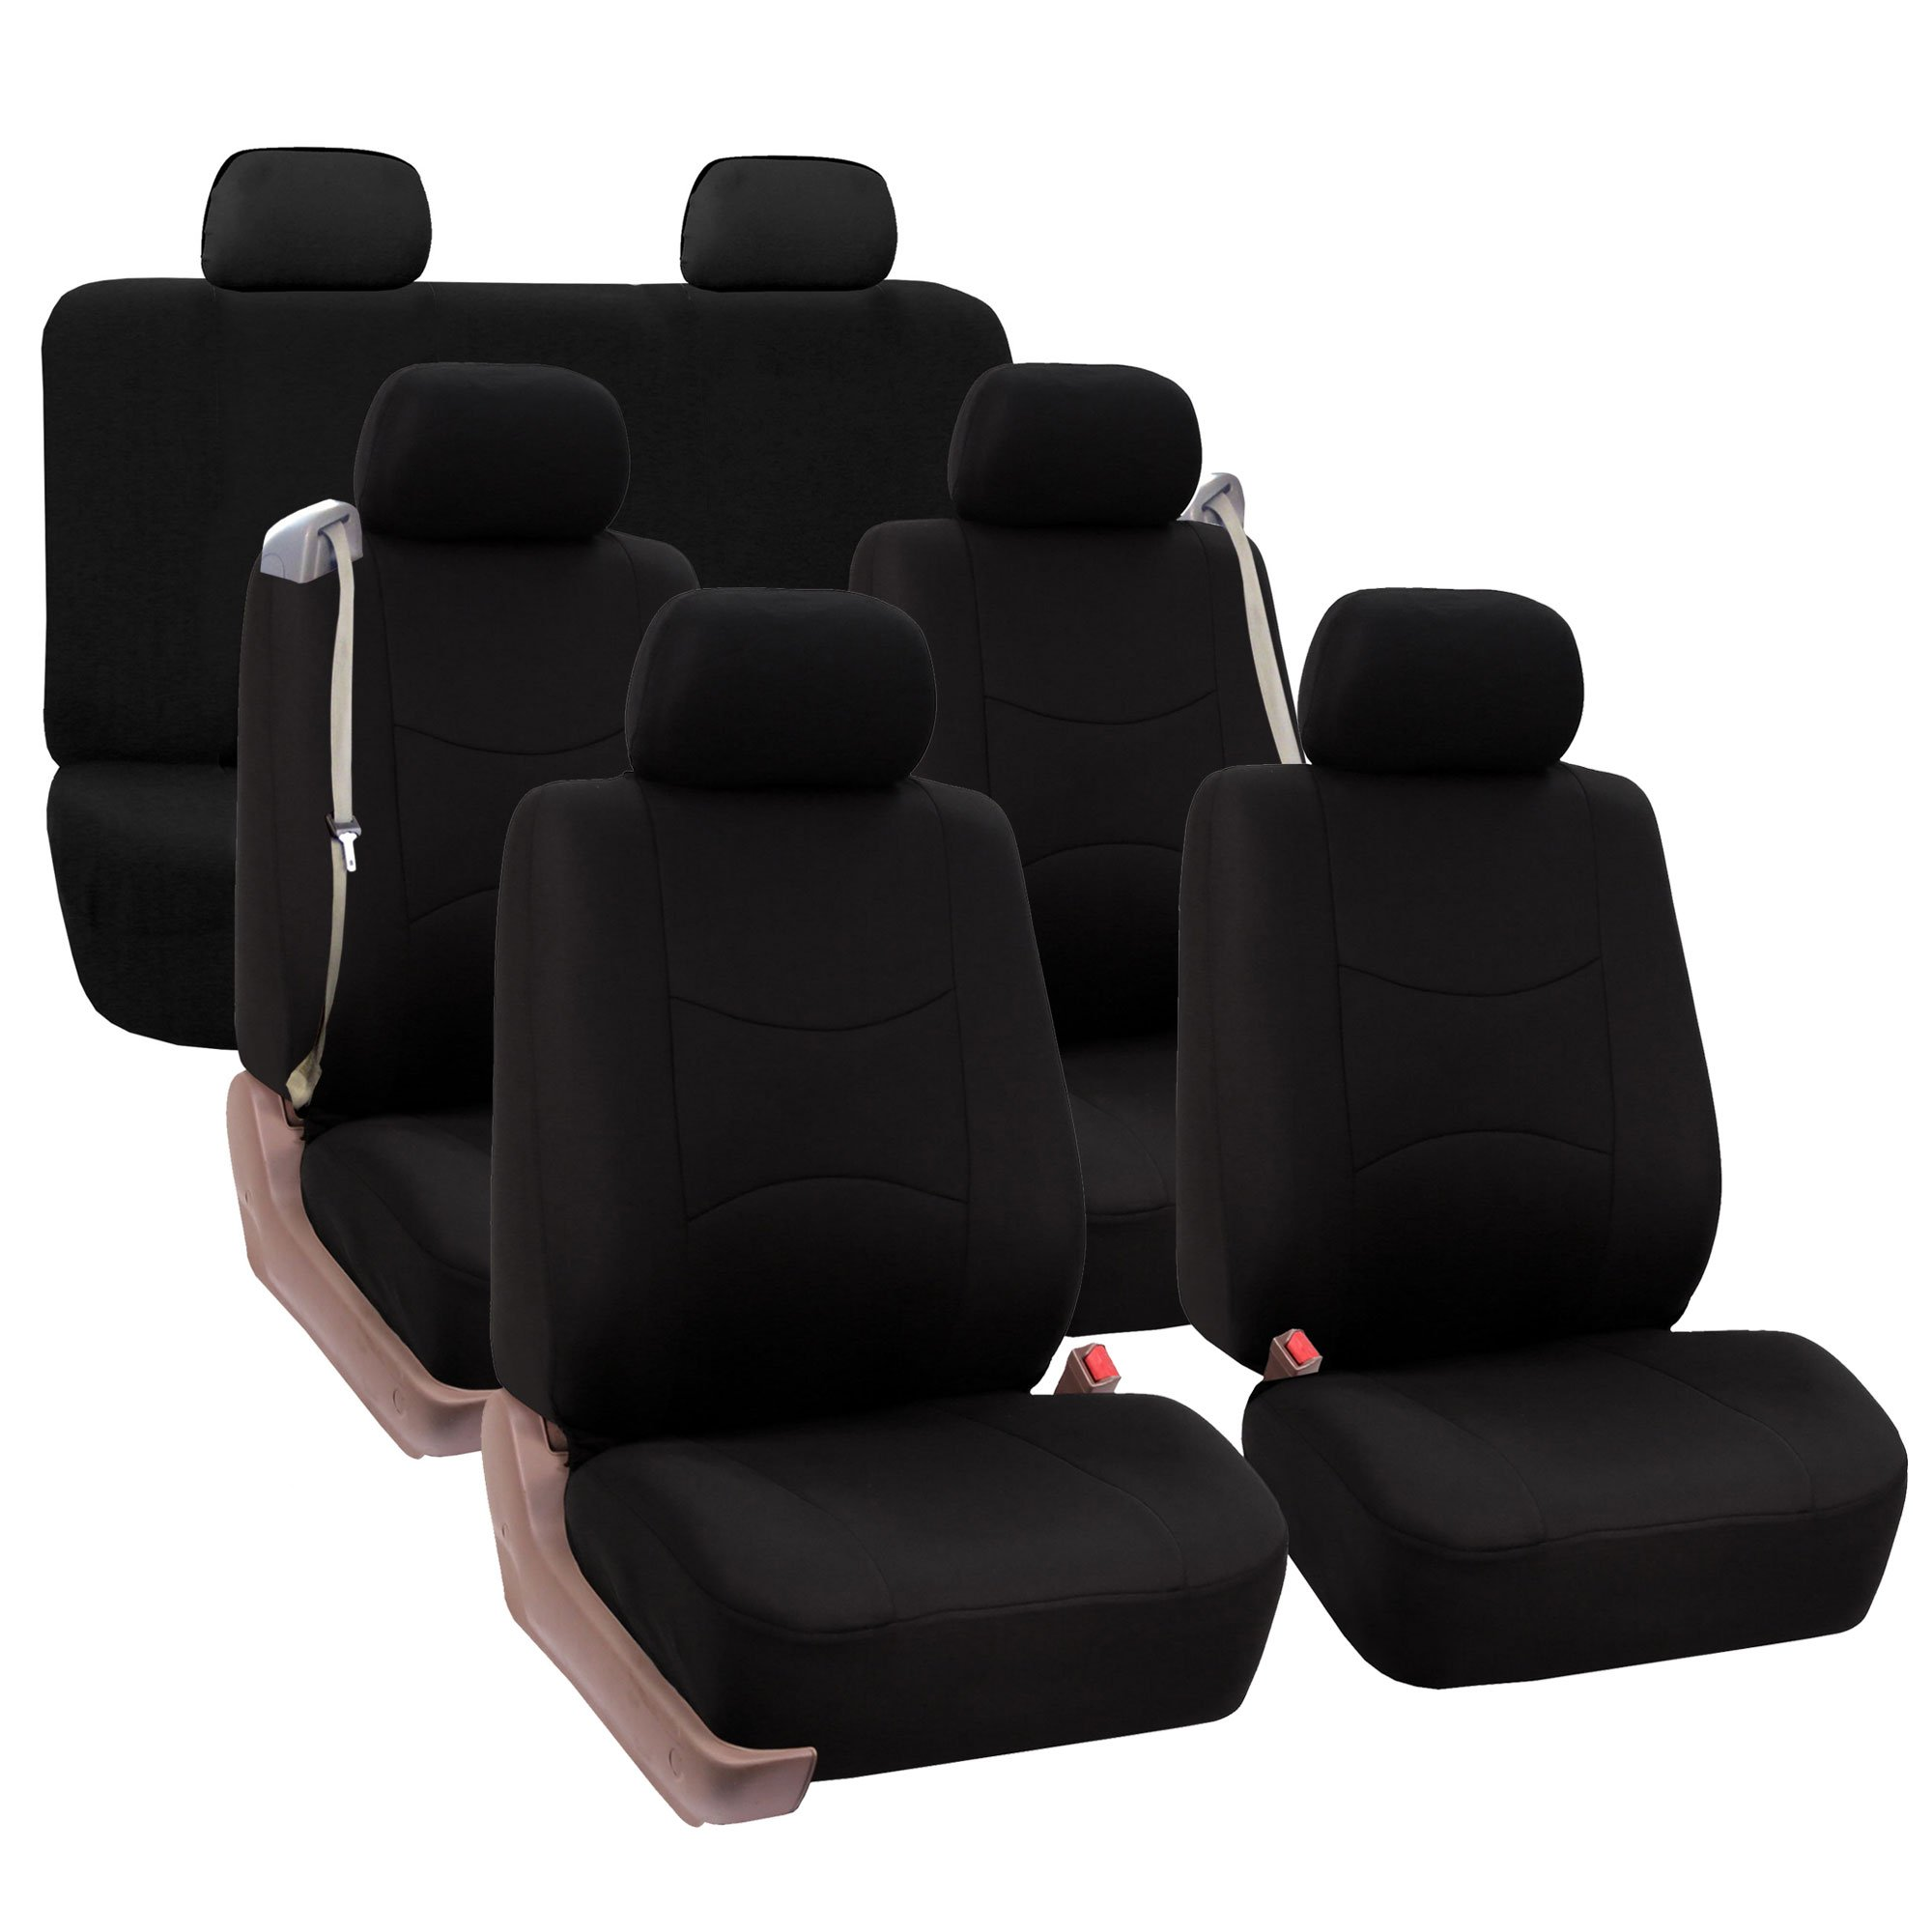 FH GROUP FH-FB351217 Three Row Full Set - All Purpose Flat Cloth Built-In Seat Belt Car Seat Cover , Solid Black - Fit Most Truck, Suv, or Van